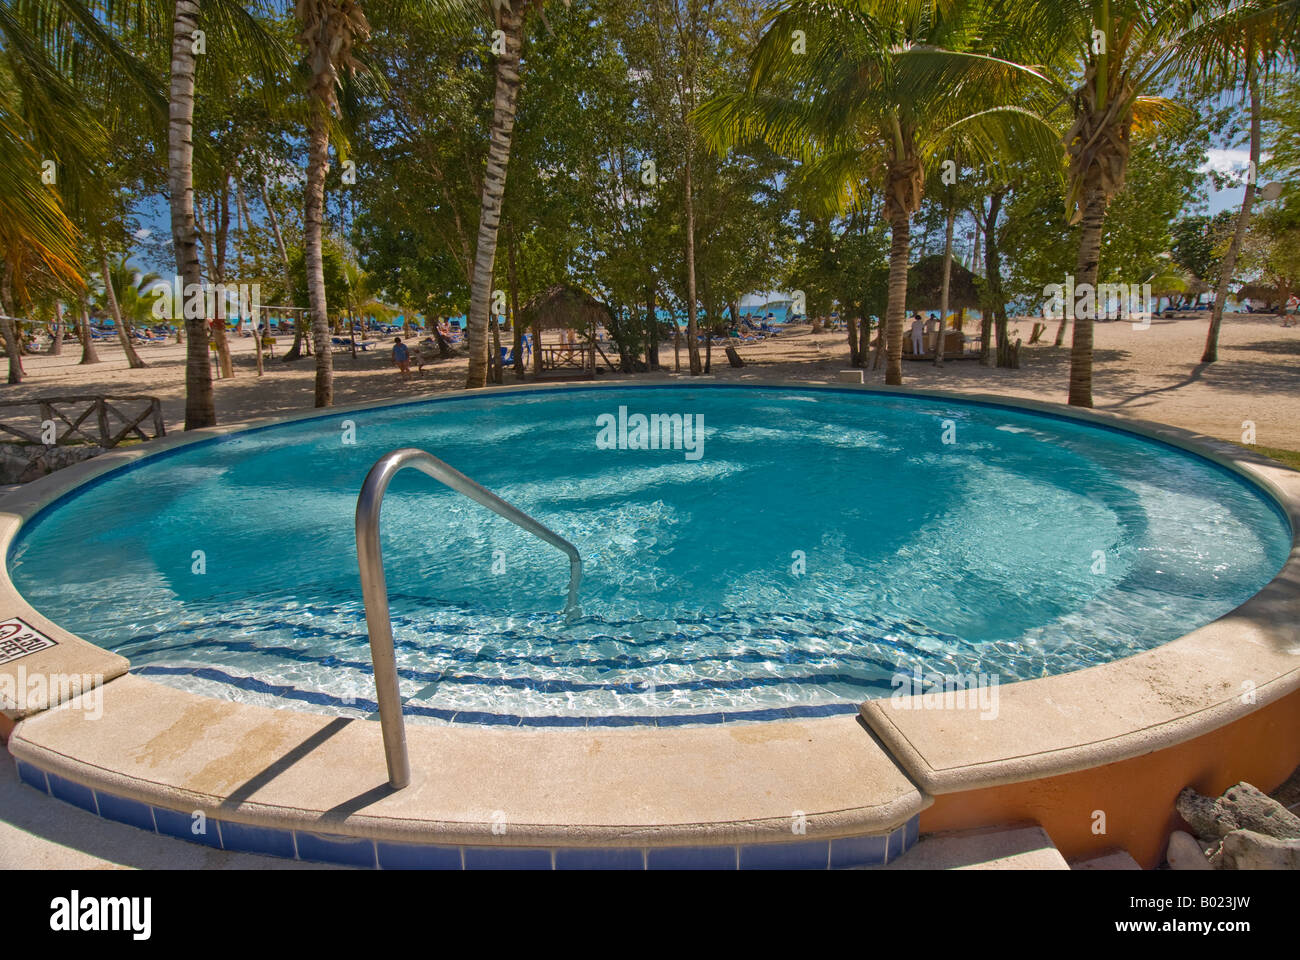 Dominican republic bayahibe small round swimming pool palm trees stock photo 17257153 alamy - Palm beach swimming pool ...